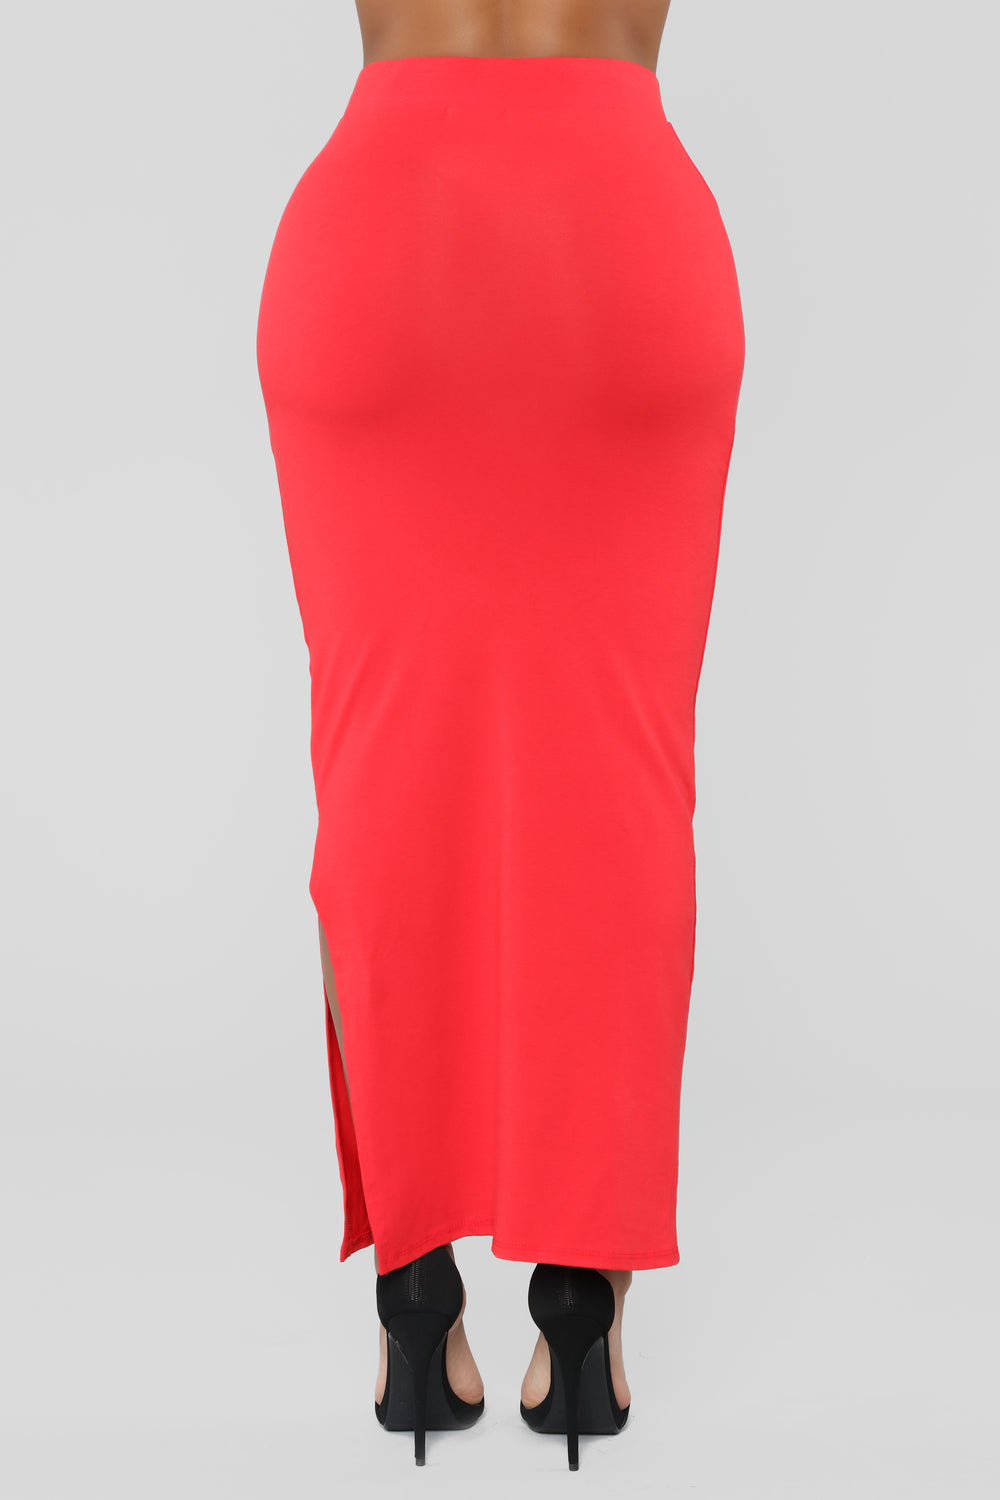 Every Side Slit Skirt - Red